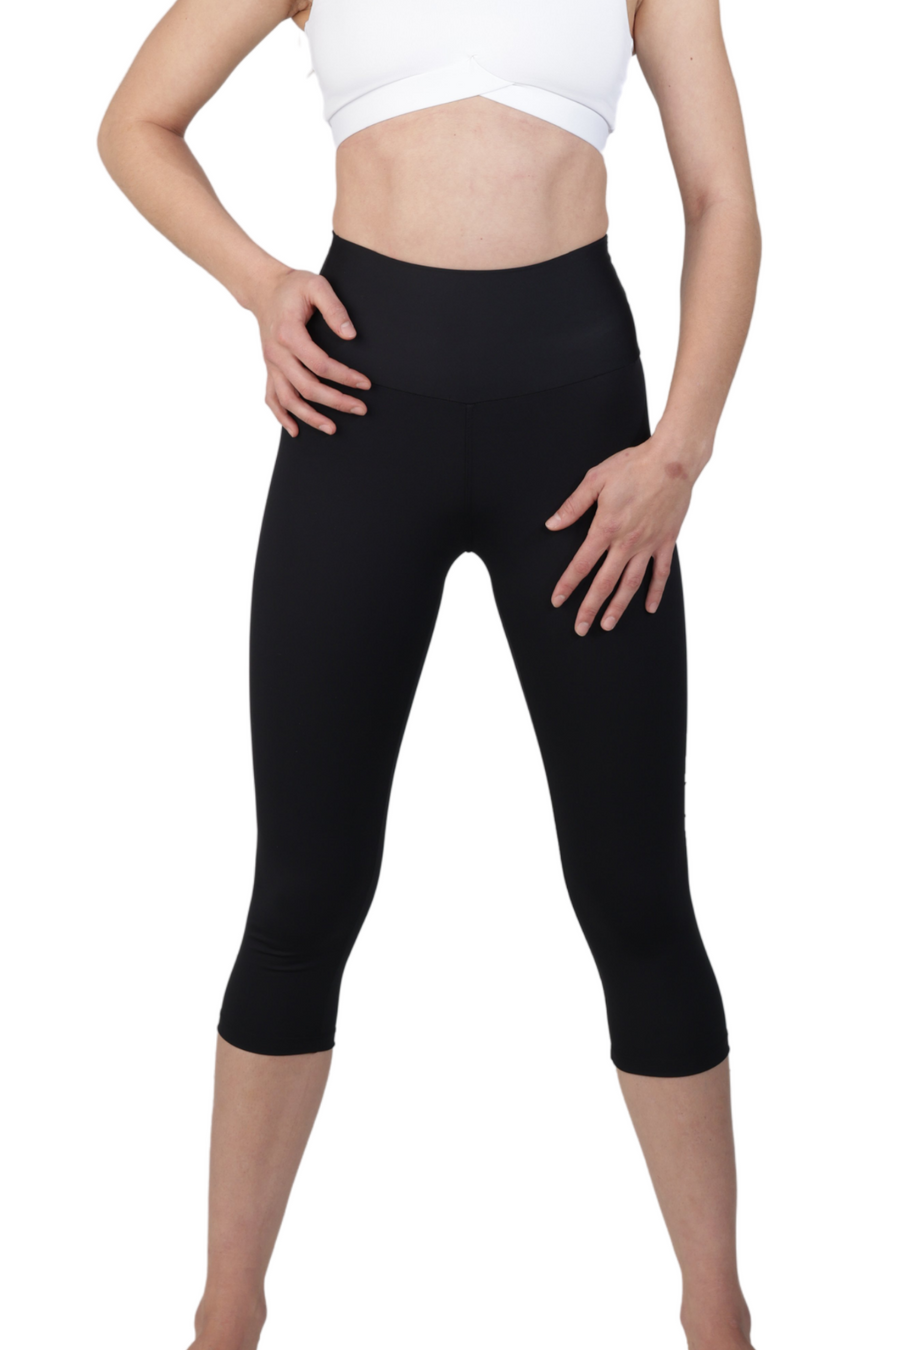 black high waist cellulite reducing cropped legging